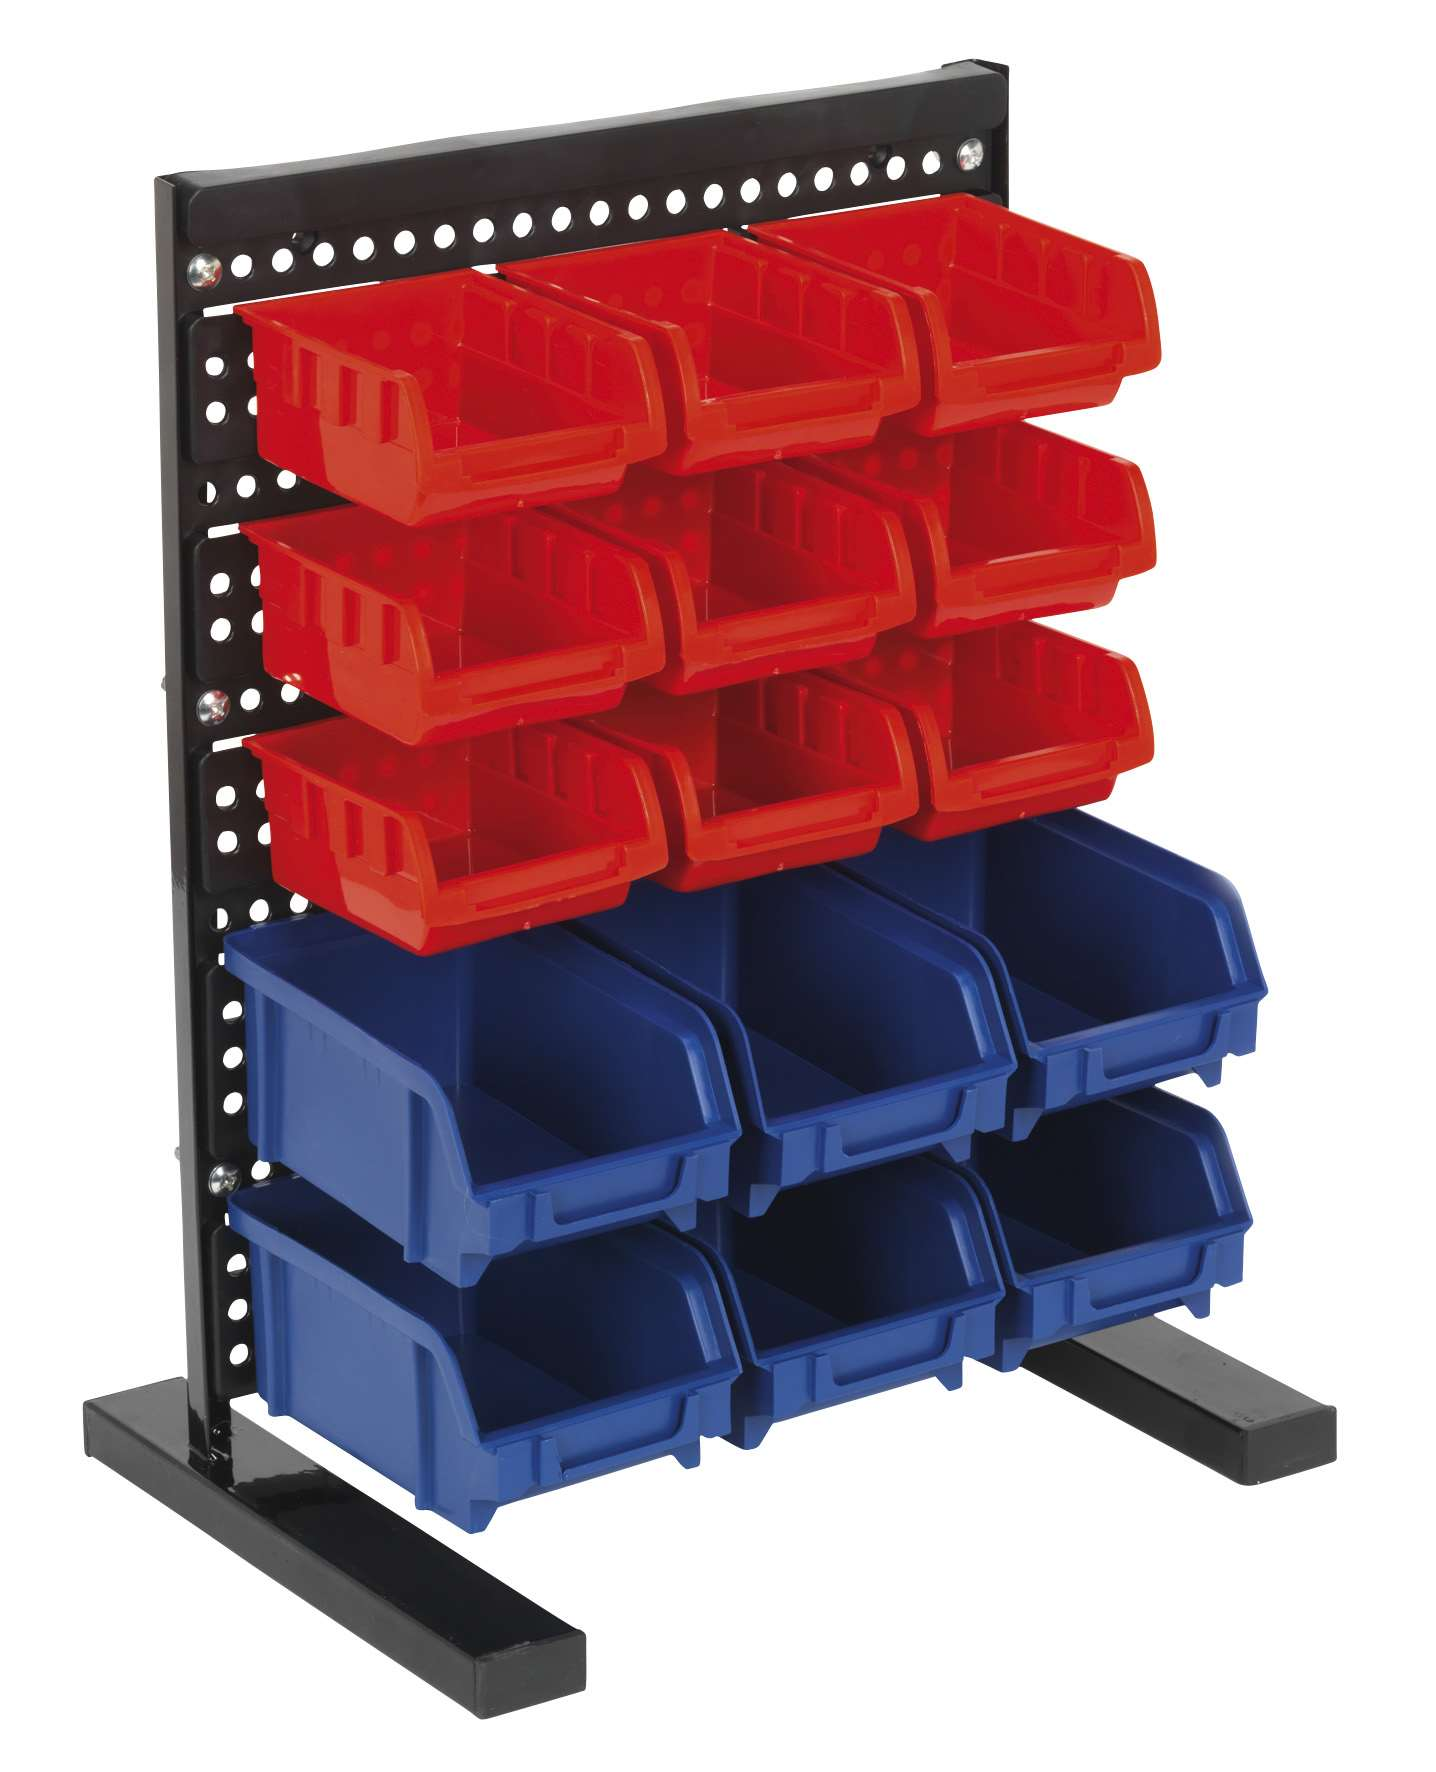 Sealey tps1569 bin storage system bench mounting 15 bin for Bench tool system